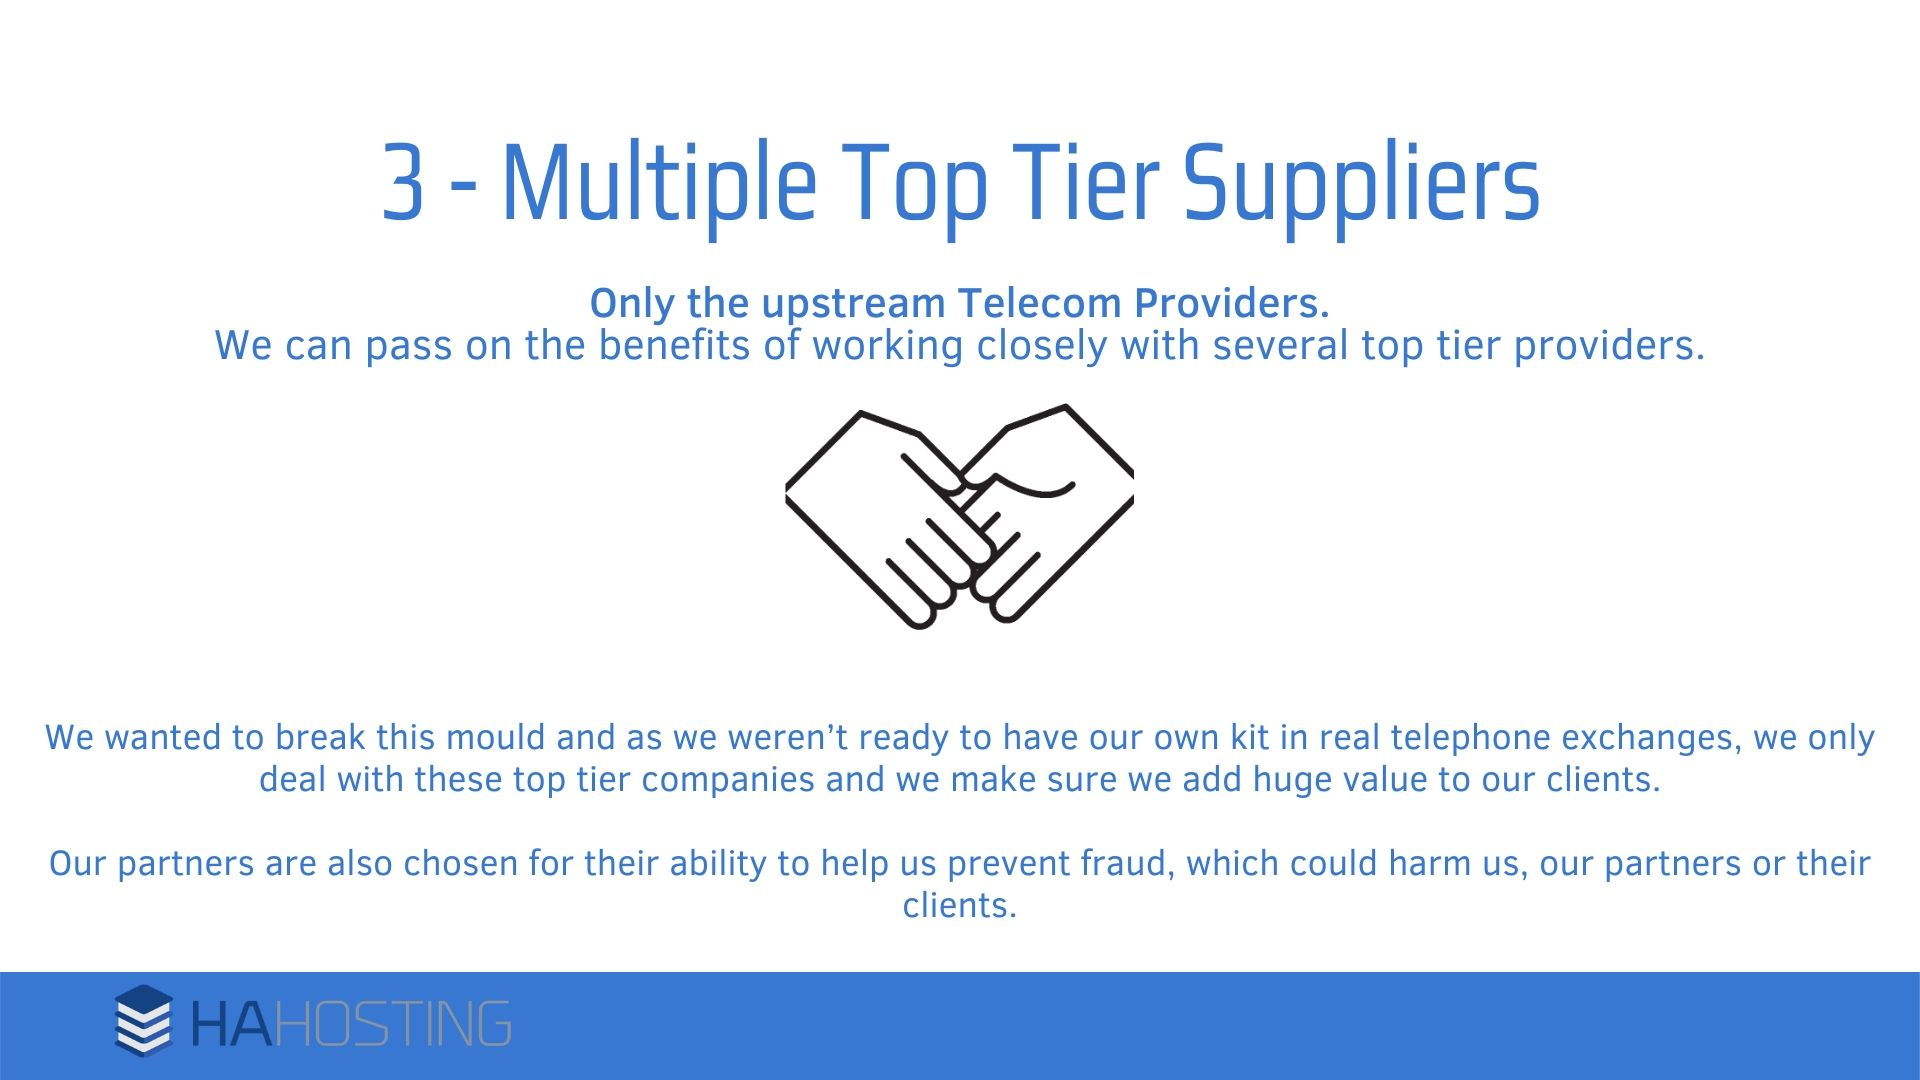 multiple top tier suppliers - We wanted to break this mould and as we weren't ready to have our own kit in real telephone exchanges, we only deal with these top tier companies and we make sure we add huge value to our clients. Our partners are also chosen for their ability to help us prevent fraud, which could harm us, our partners or their clients.